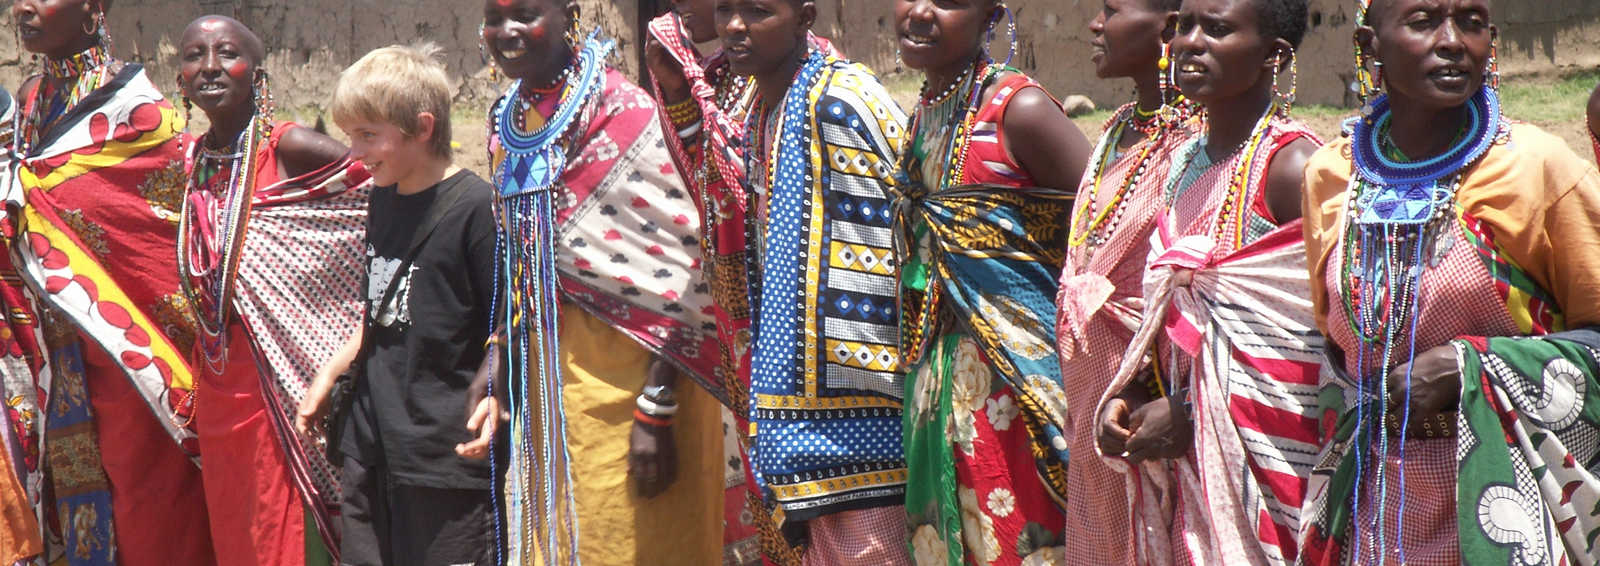 Boy with Masai women